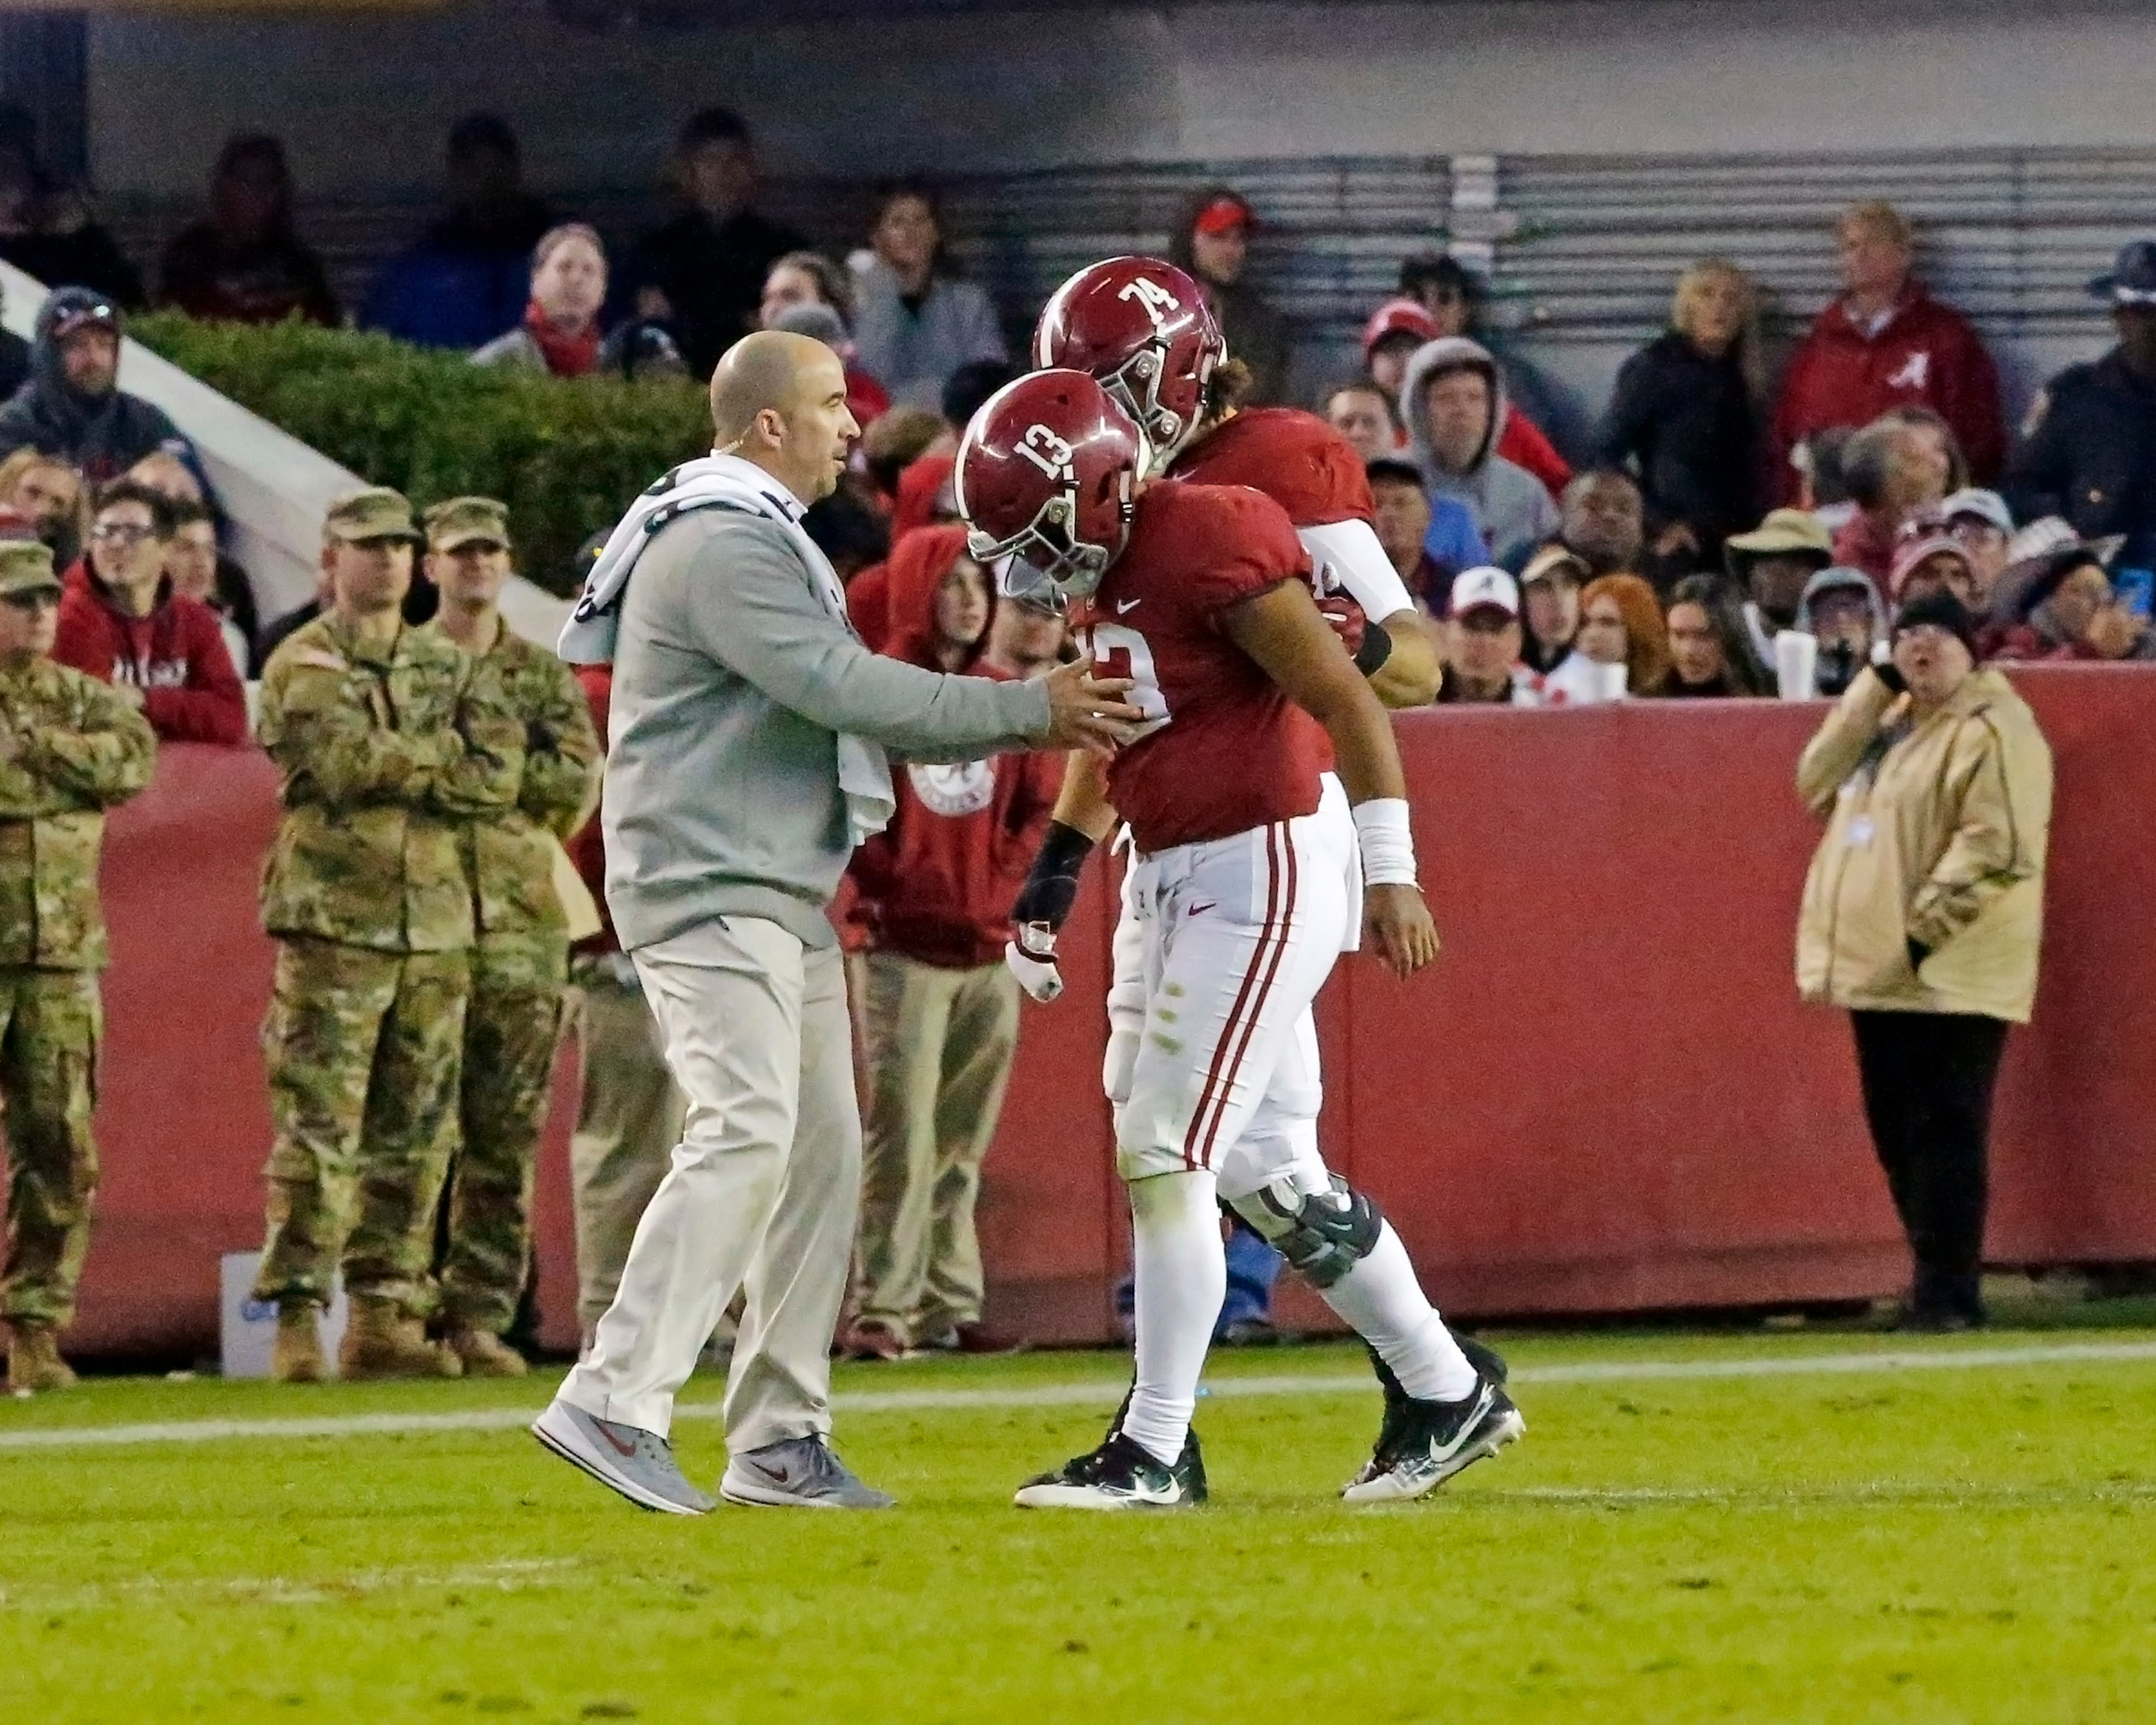 Alabama Crimson Tide offensive lineman Jedrick Wills Jr. (74) helps Alabama Crimson Tide quarterback Tua Tagovailoa (13) off the field in the third quarter during the second half of the game between Mississippi State and the University of Alabama at Bryant-Denny Stadium in Tuscaloosa, Al. Credit: Jason Clark / Daily Mountain Eagle